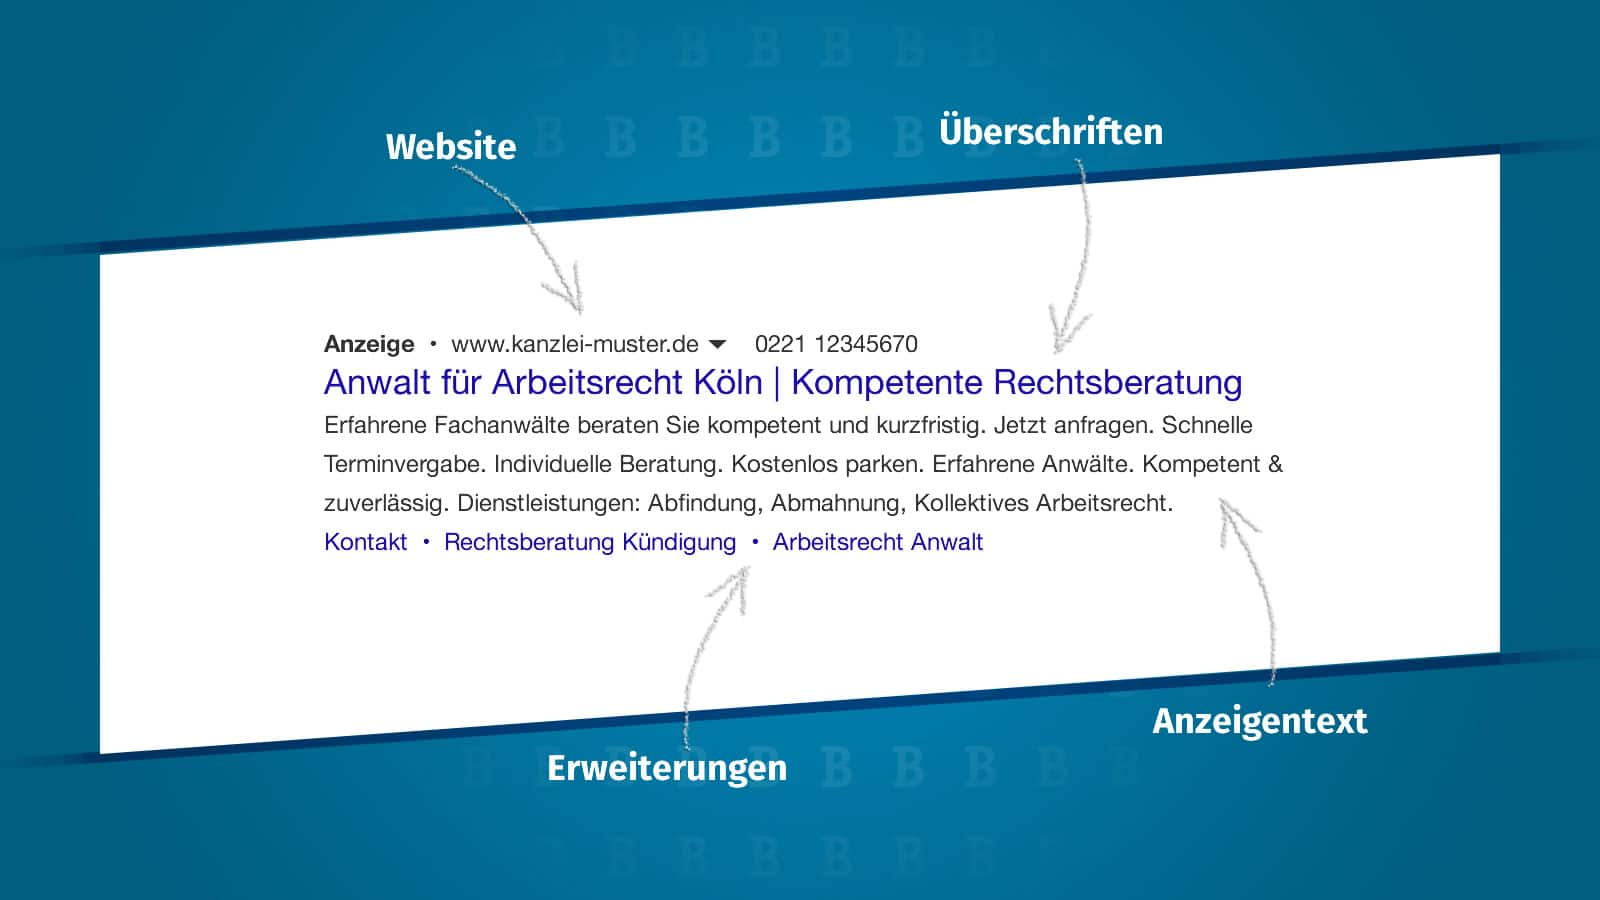 Google Ads (Adwords) Funktionsweise - Wie funktioniert Google Ads?